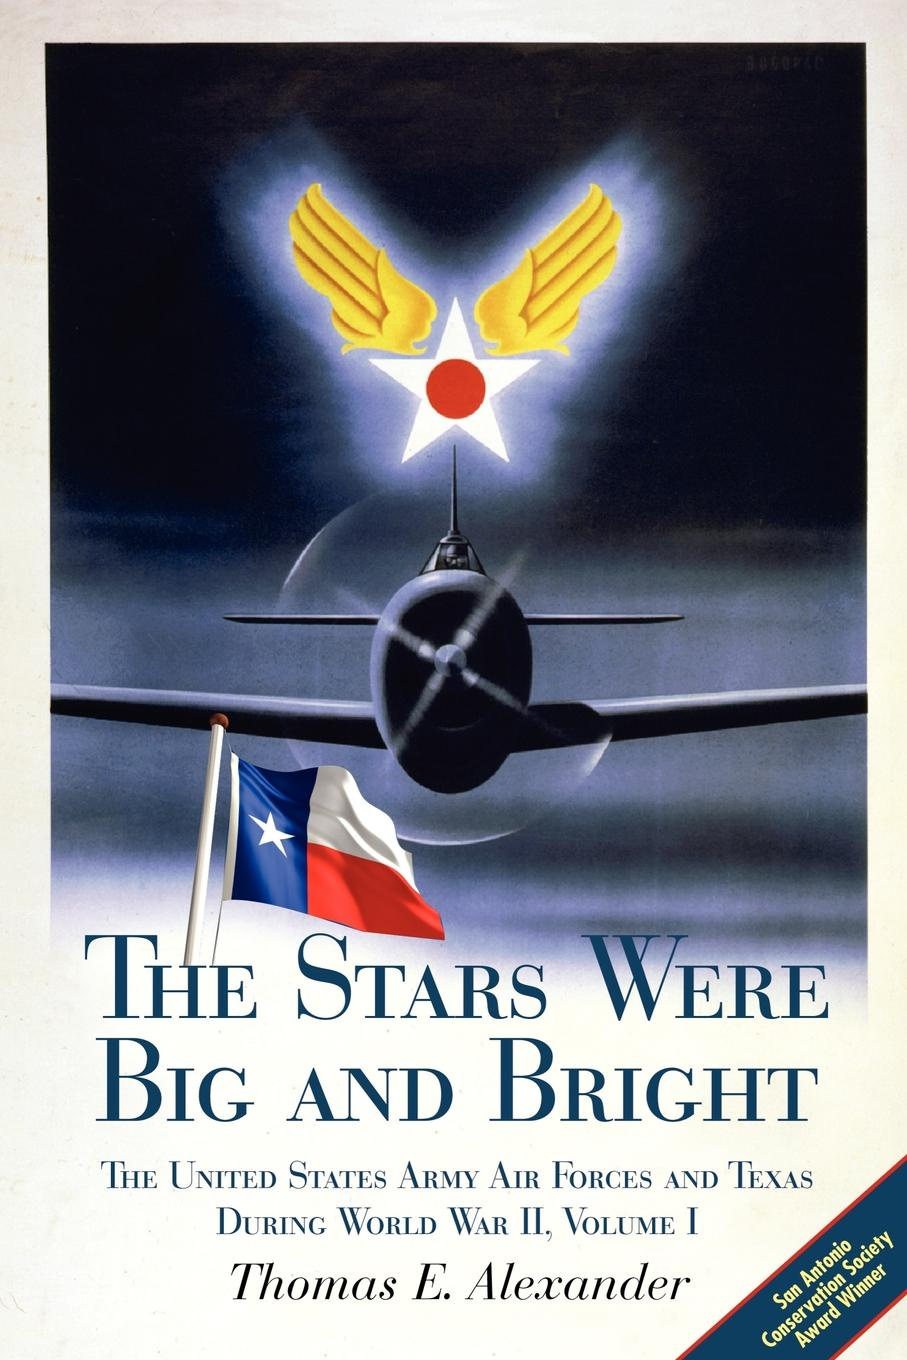 Thomas E. Alexander, T. E. Alexander The Stars Were Big and Bright, Volume I. The United States Army Air Forces and Texas During World War II marie s burns the big gap volume i